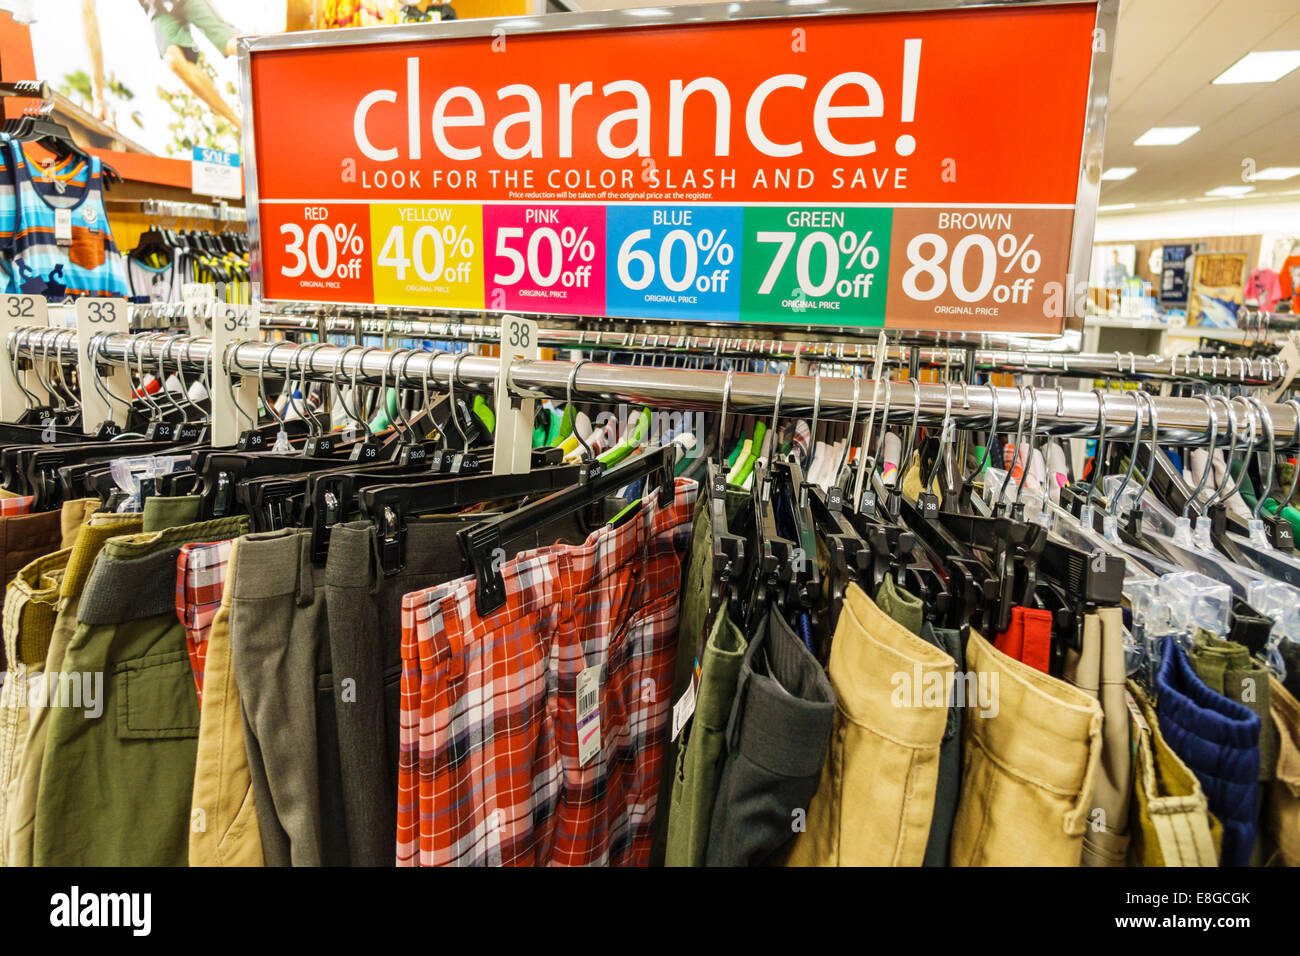 9780c7f6420 Naples Florida shopping Bealls Department Store discount clearance  promotion clothing